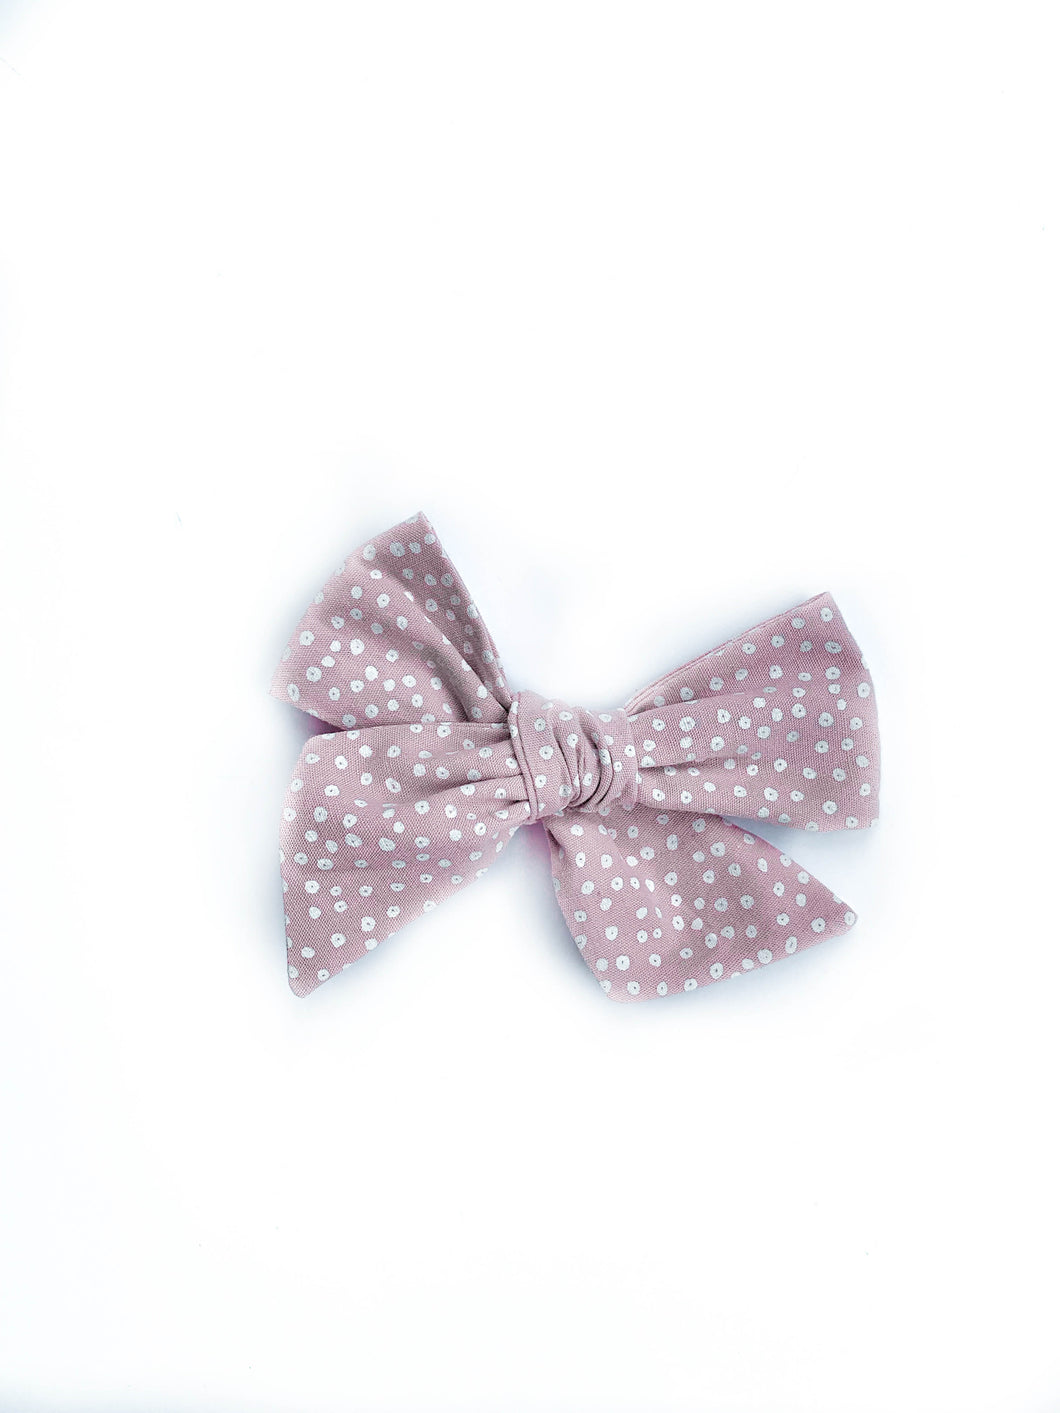 Chunky Knot // Pink Dot - Knots and Dots